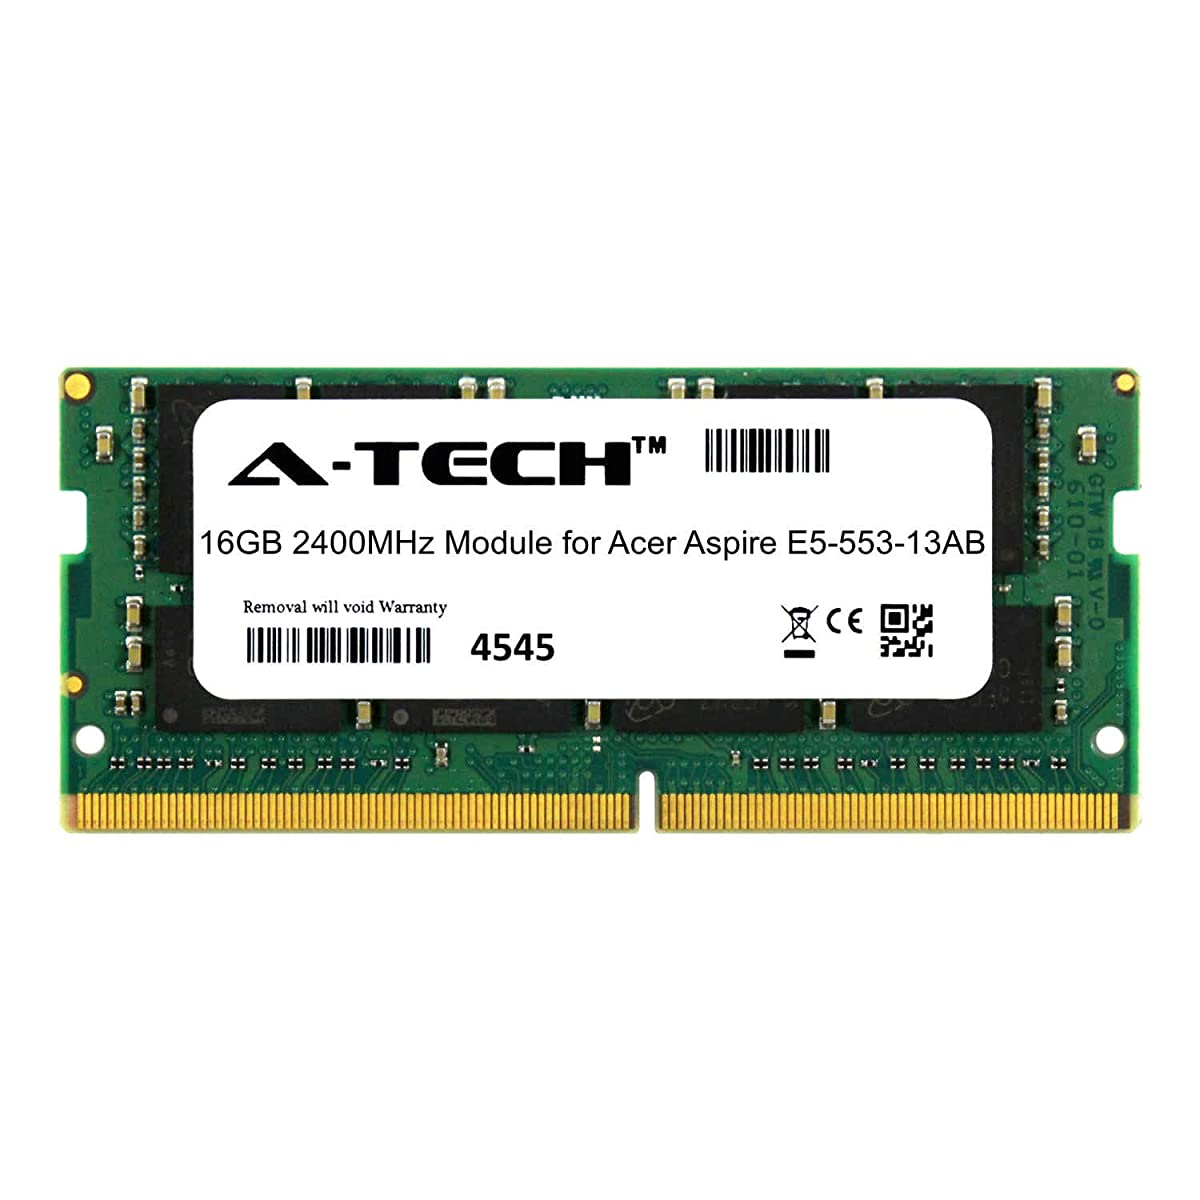 A-Tech 16GB Module for Acer Aspire E5-553-13AB Laptop & Notebook Compatible DDR4 2400Mhz Memory Ram (ATMS268565A25831X1)